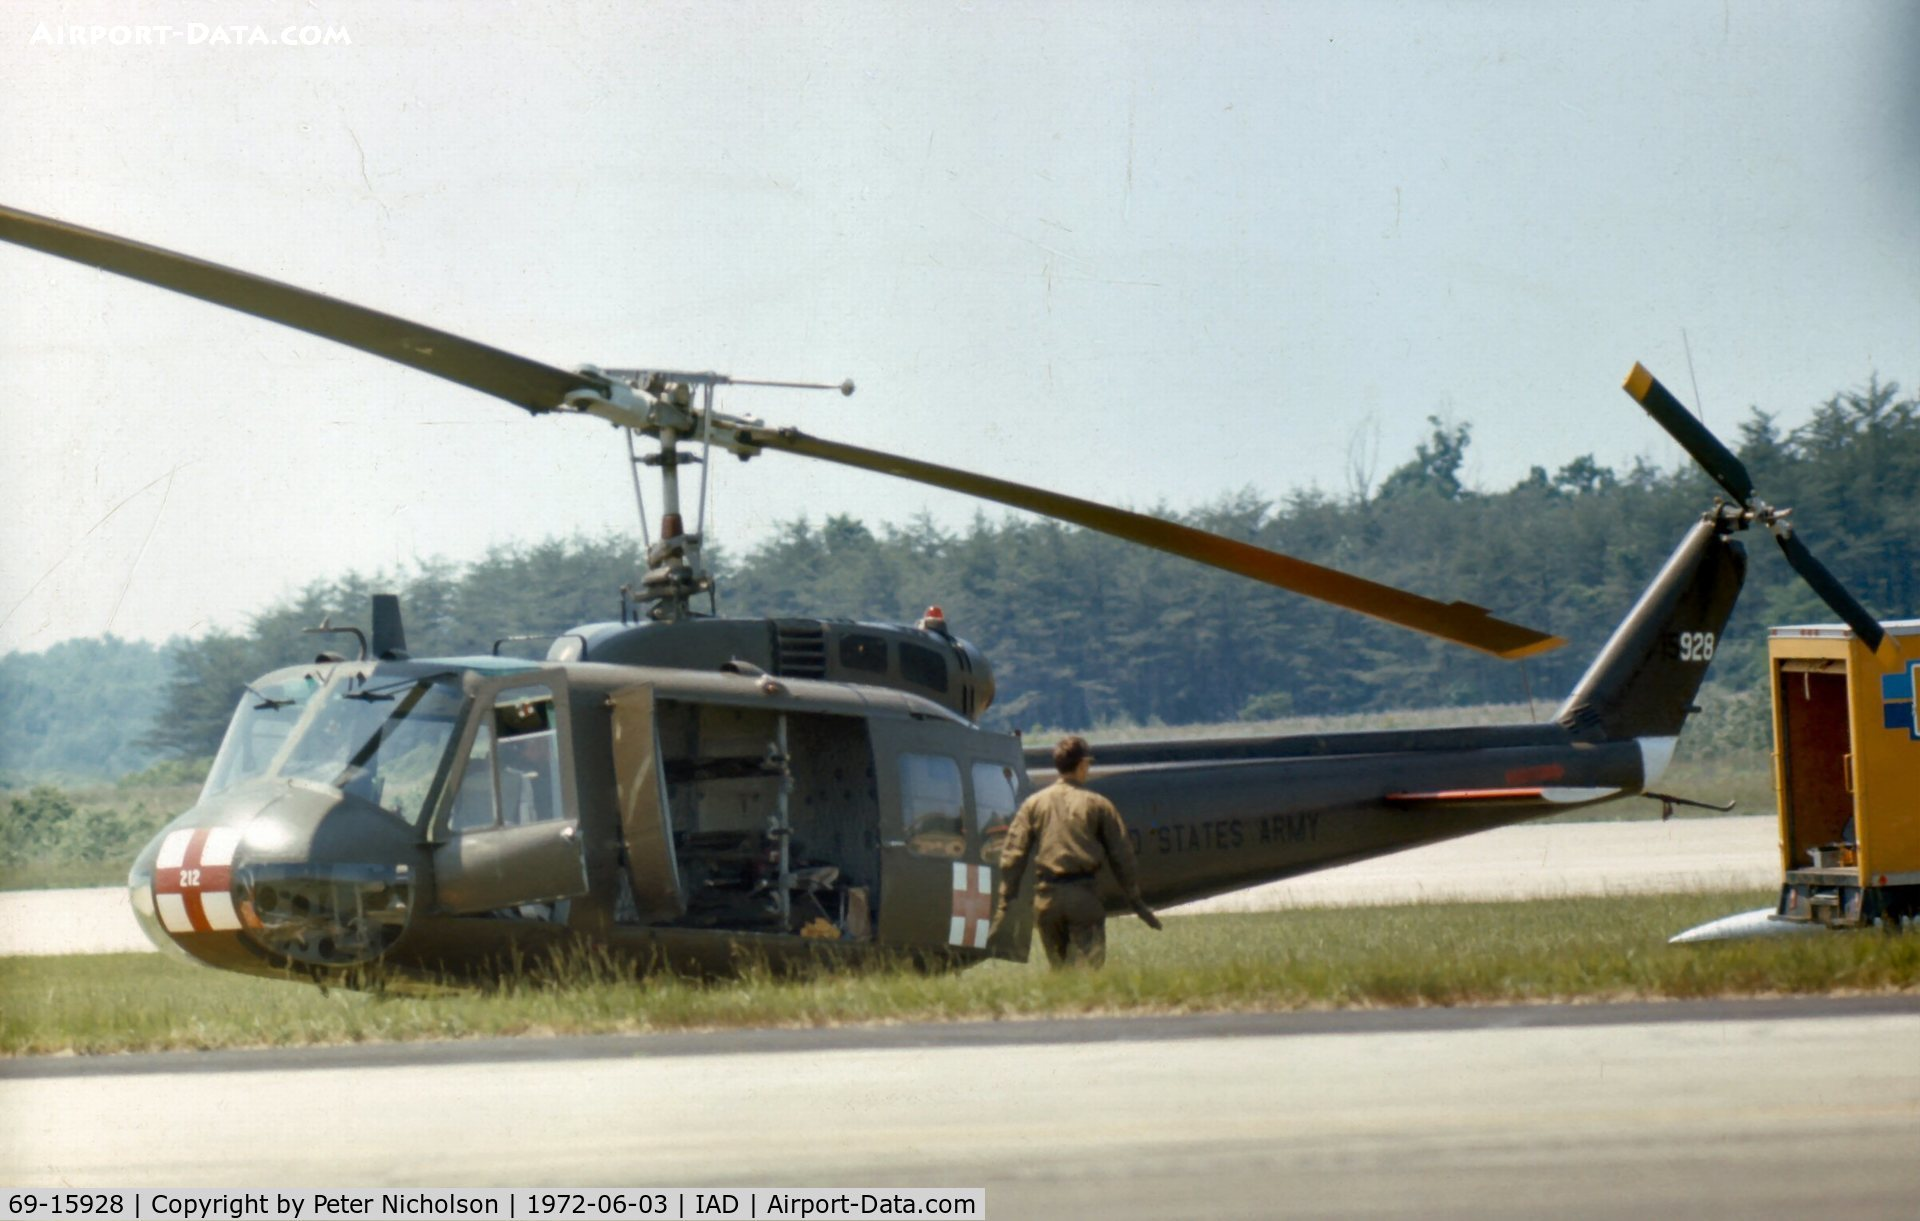 69-15928, 1969 Bell UH-1H Iroquois C/N 12216, 212 Med Det from Ft. Meade provided emergency services at Transpo 72 at Dulles Airport